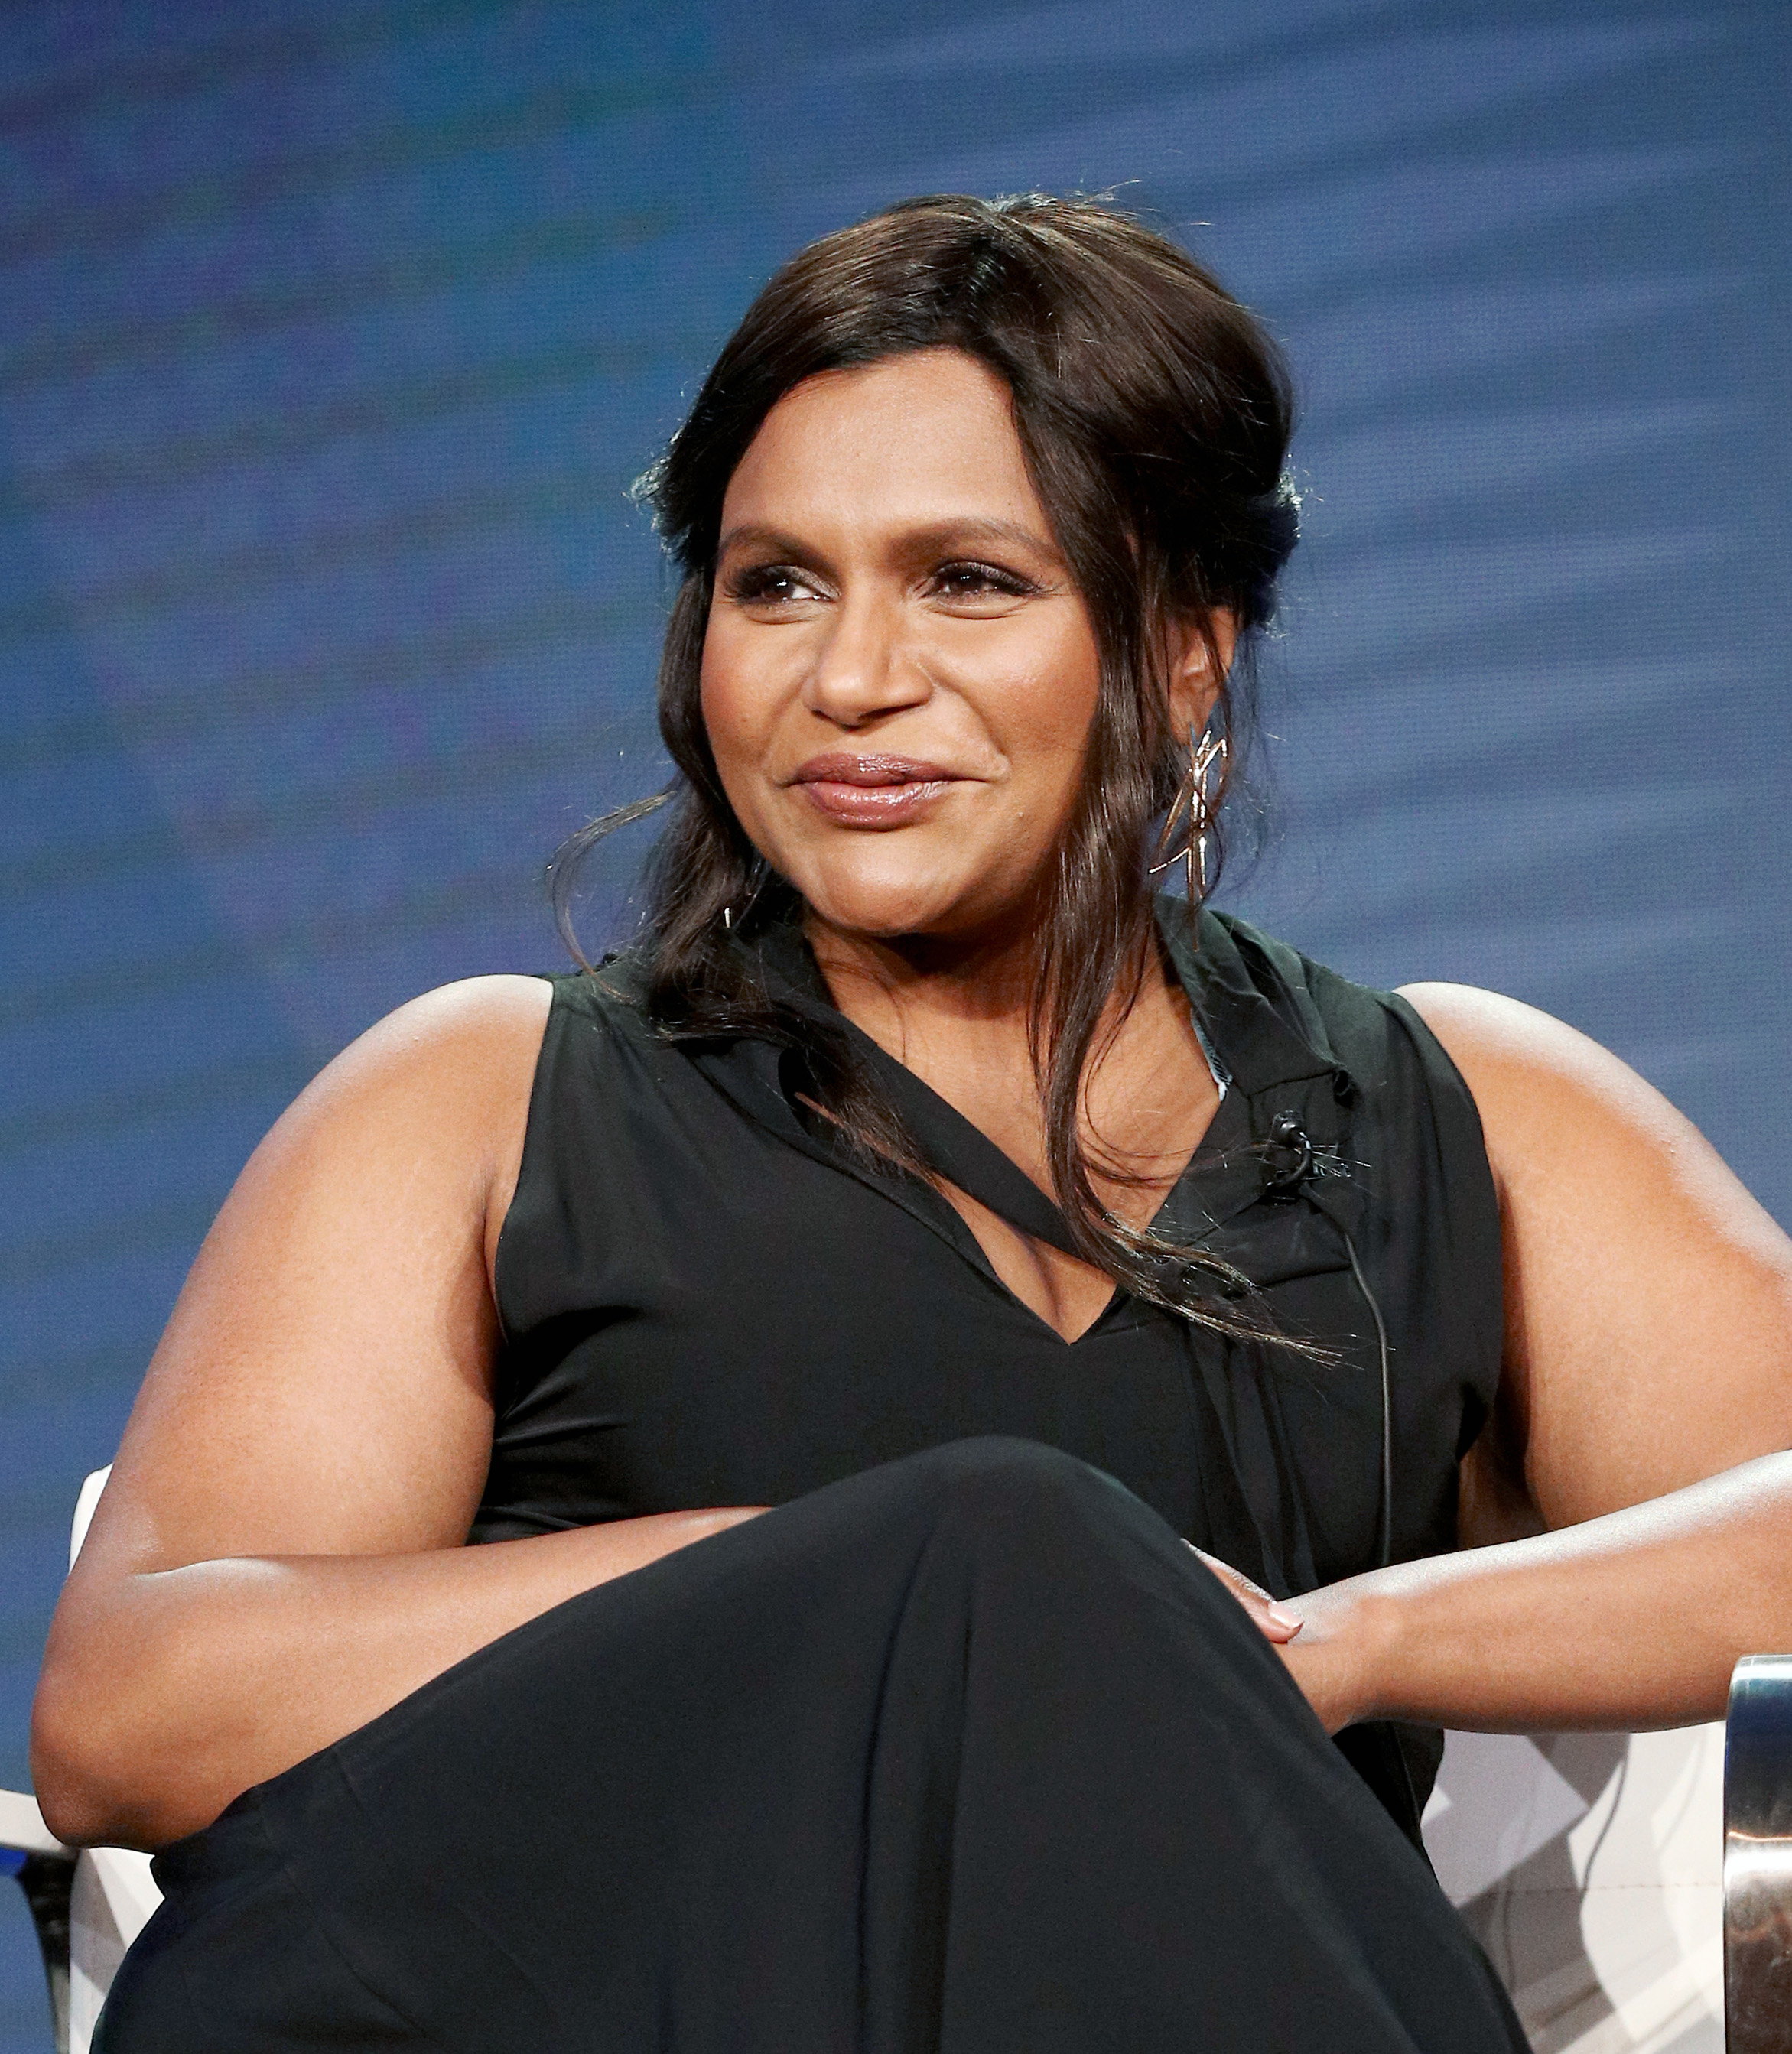 Mindy Kaling Was Criticized For Supporting Aziz Ansari Here S How She Responded The Boston Globe